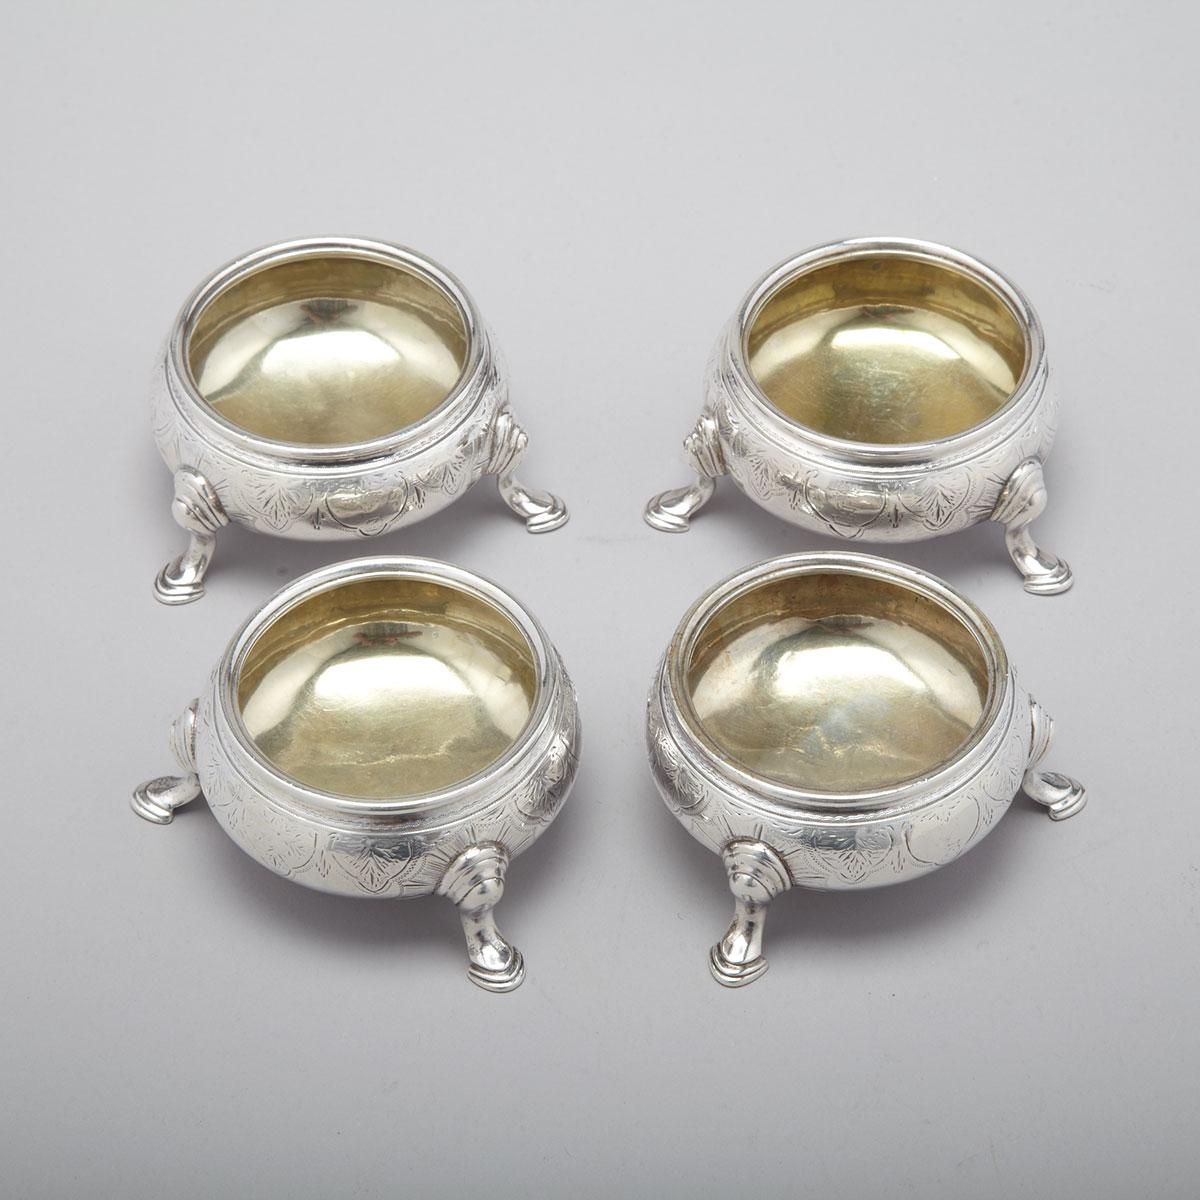 Four Victorian Silver Salt Cellars, William Moulson, London, 1858